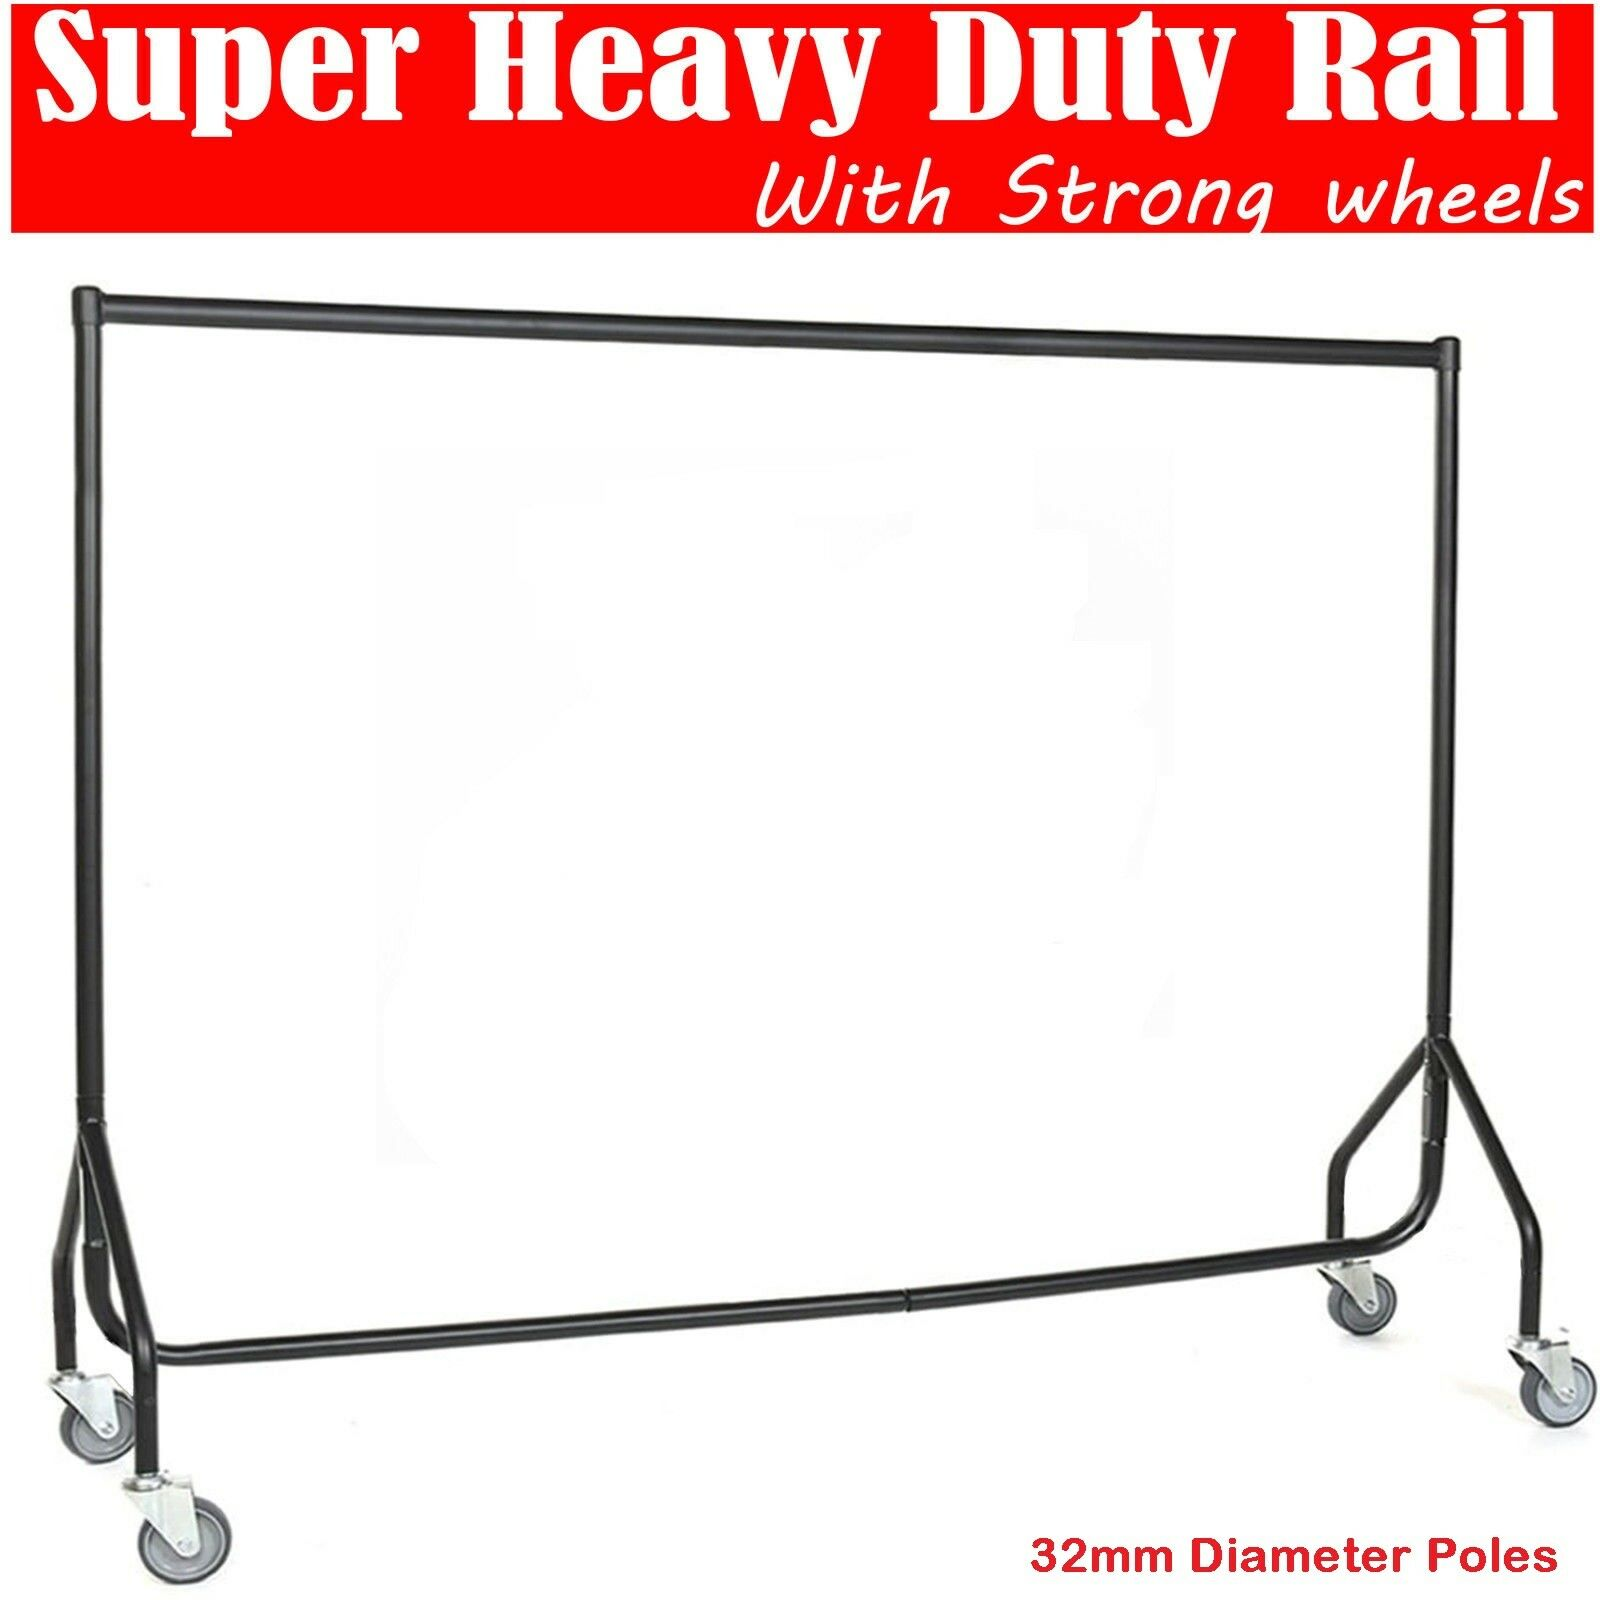 4 FT WIDE /& HEIGHT FROM 6ft 8ft 7Ft HEAVY DUTY BLACK CLOTHES,GARMENT RAILS